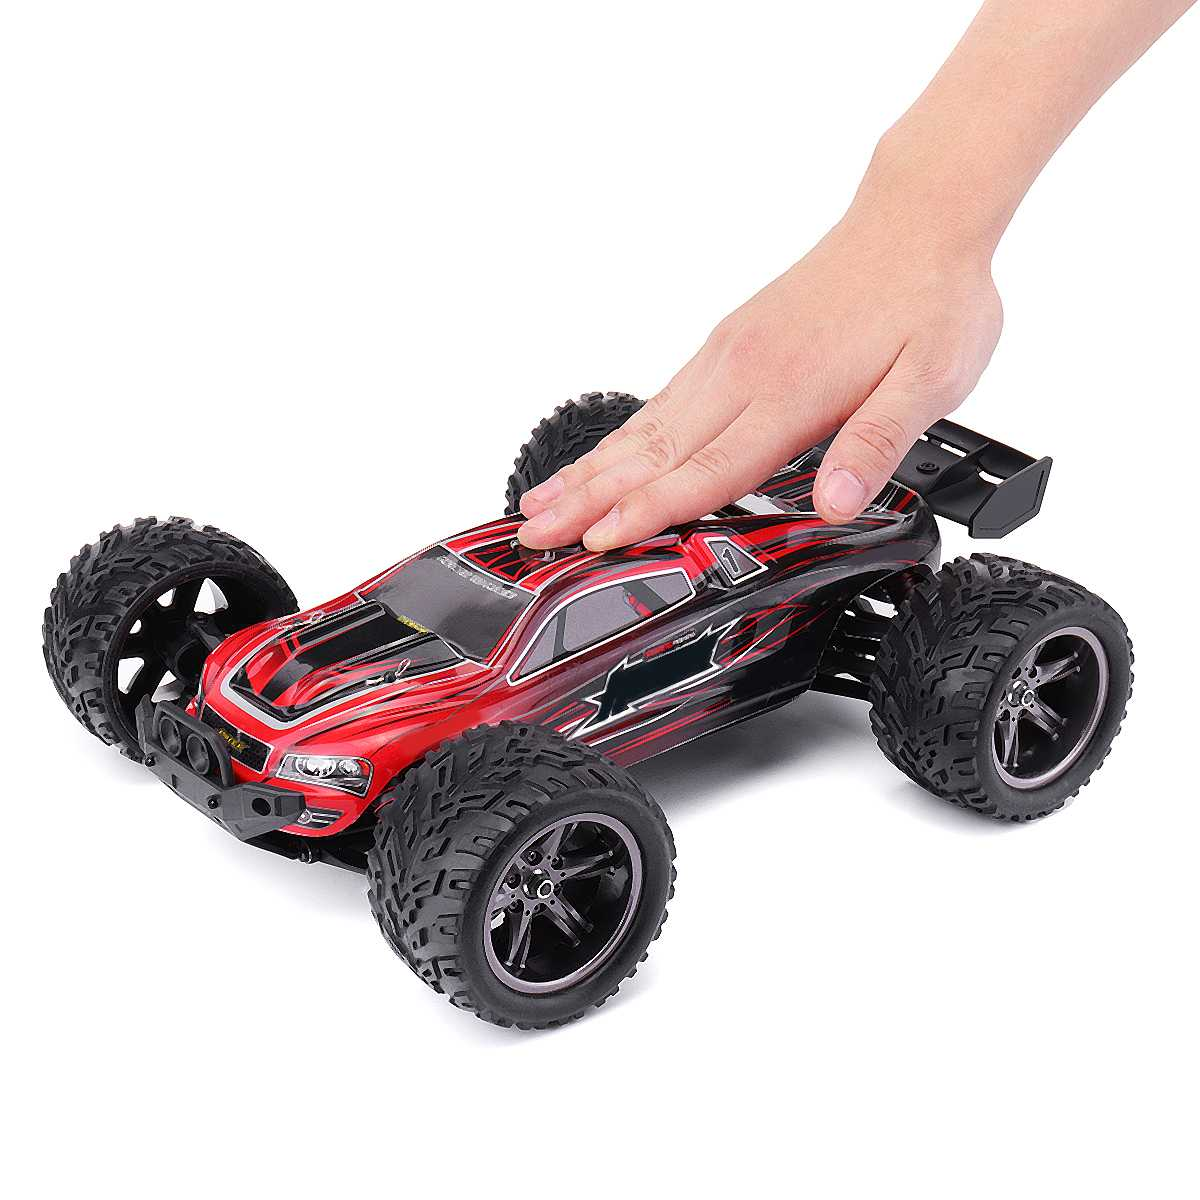 1:12 RC Car 2.4G Rock Crawlers Driving Car Waterproof Remote Control Car Model OffRoad Vehicle Toy High Speed Hobby Truck Drift image